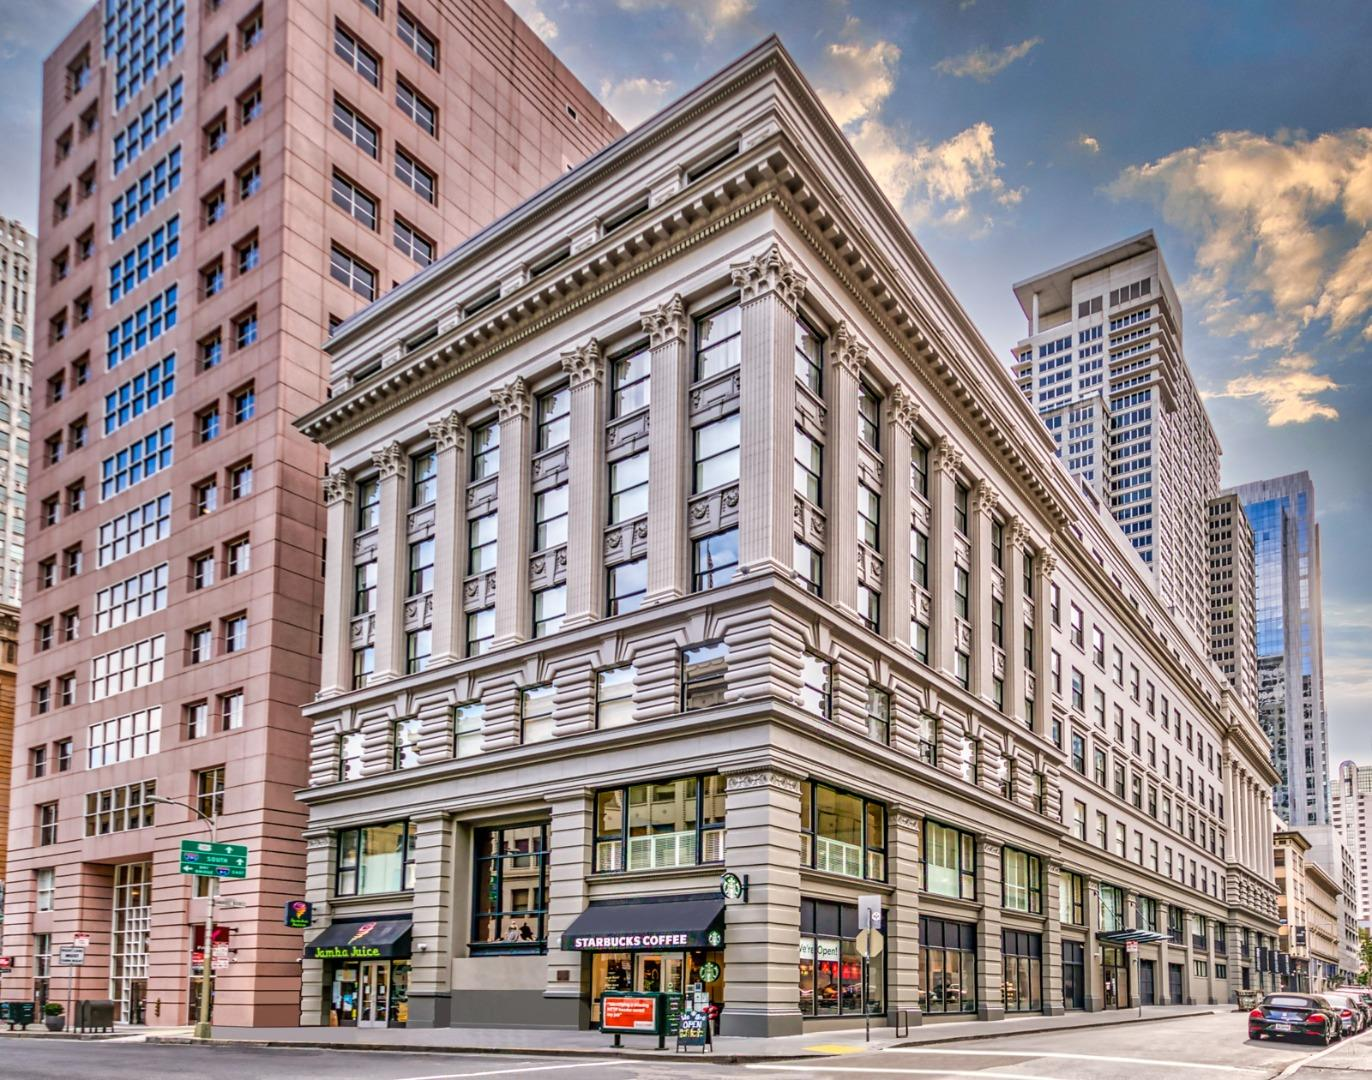 Rarely Available Condo in the Montgomery   Situated between SoMa and the Financial District, this modern studio combines sleek elegance, historic flair, and quick access to many of San Francisco's top landmarks. Topped by high ceilings, the condo boasts teak cabinetry, Bosch appliances, granite countertops, and an exquisite view of the Palace Hotel. Includes in-unit laundry, a generous storage locker, and access to a rooftop deck with barbecue and breathtaking city views. Established in 1914 and designed by some of the city's most prolific architects, The Montgomery has been retrofitted and remodeled to today's luxury standards, offering features like 24/7 security, a doorperson, and full concierge service. With a Transit Score of 100 and a Walk Score of 98, this prized location is moments away from BART, Muni, Union Square, and more, providing a rare opportunity to enjoy San Francisco living at its finest.